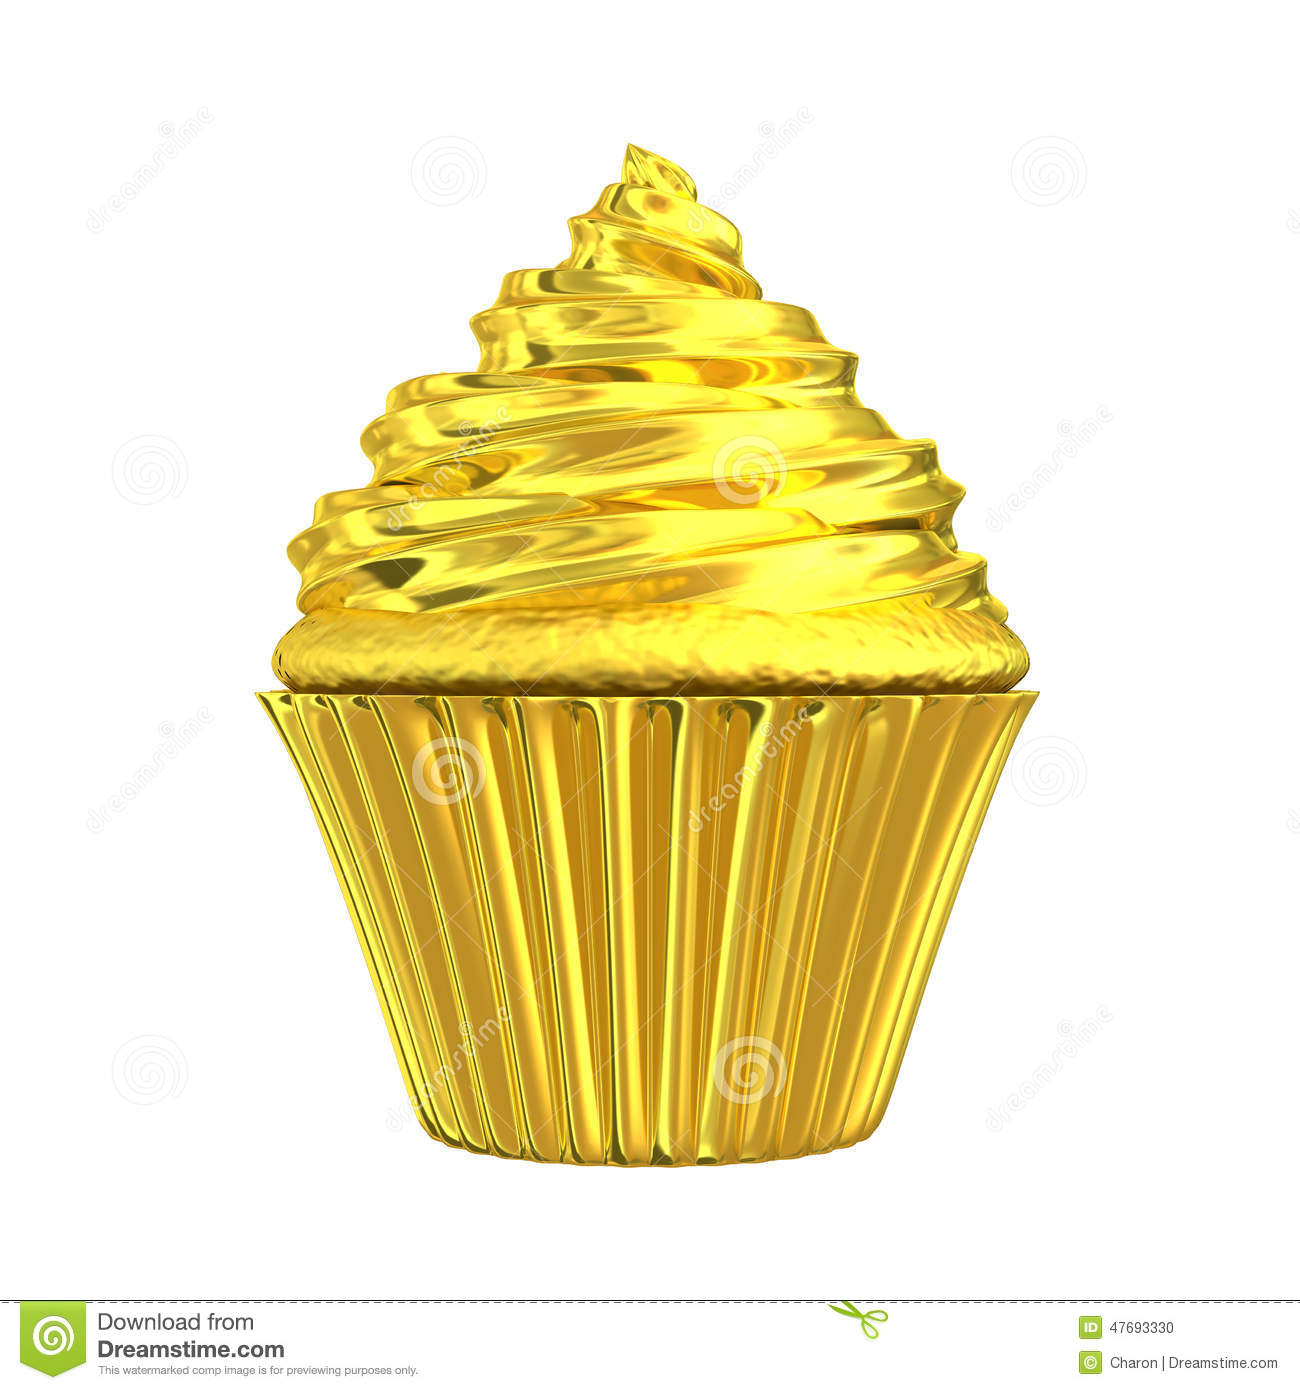 Vector Cupcakes Illustration Auto Electrical Wiring Diagram Diy Diagrams 3wayswitchwith6lights Cupcake Golden Shiny Gold Cake Stock